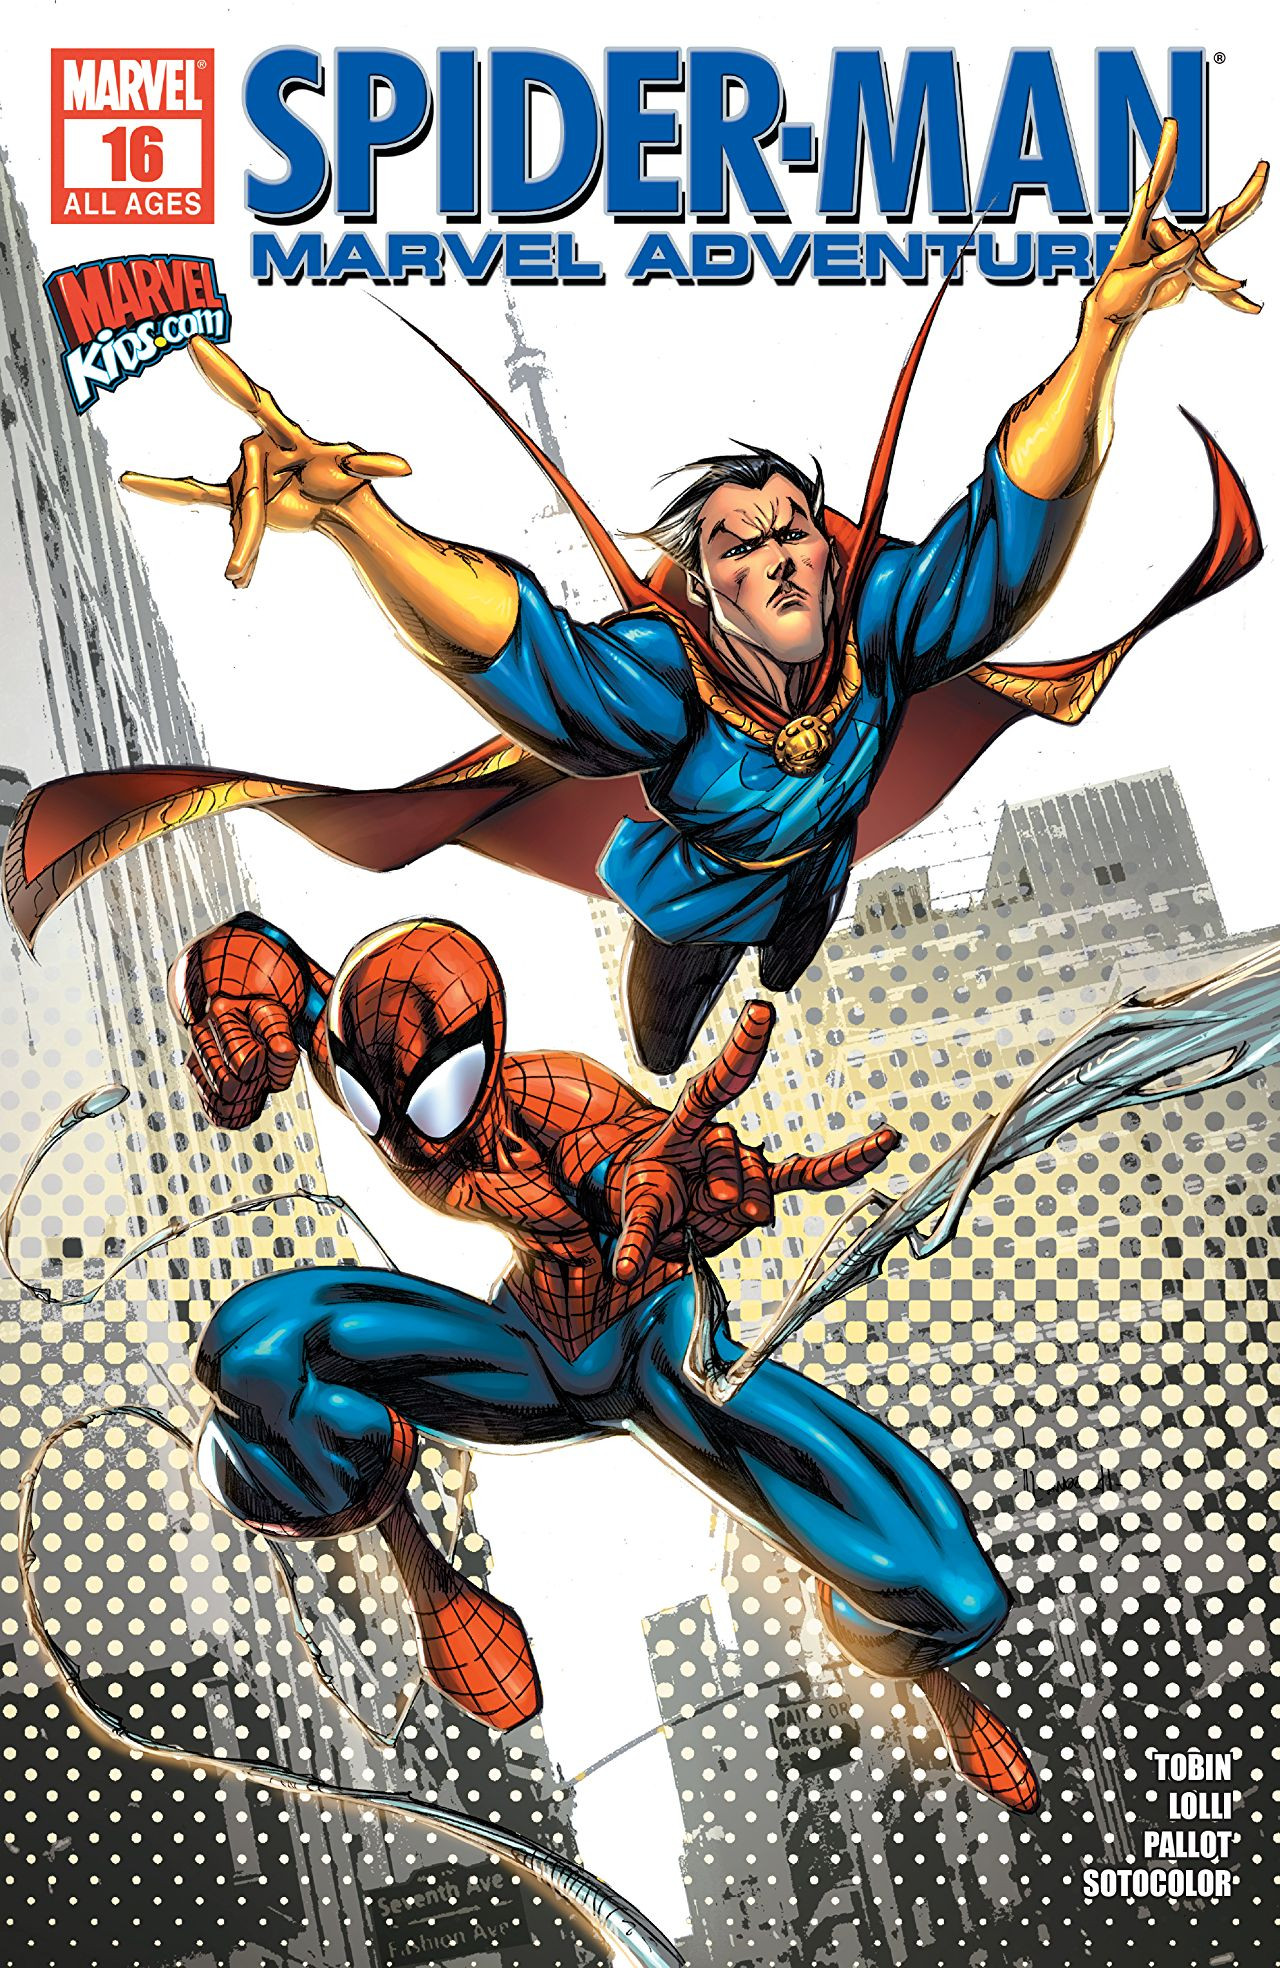 Marvel Adventures Spider-Man Vol 2 16